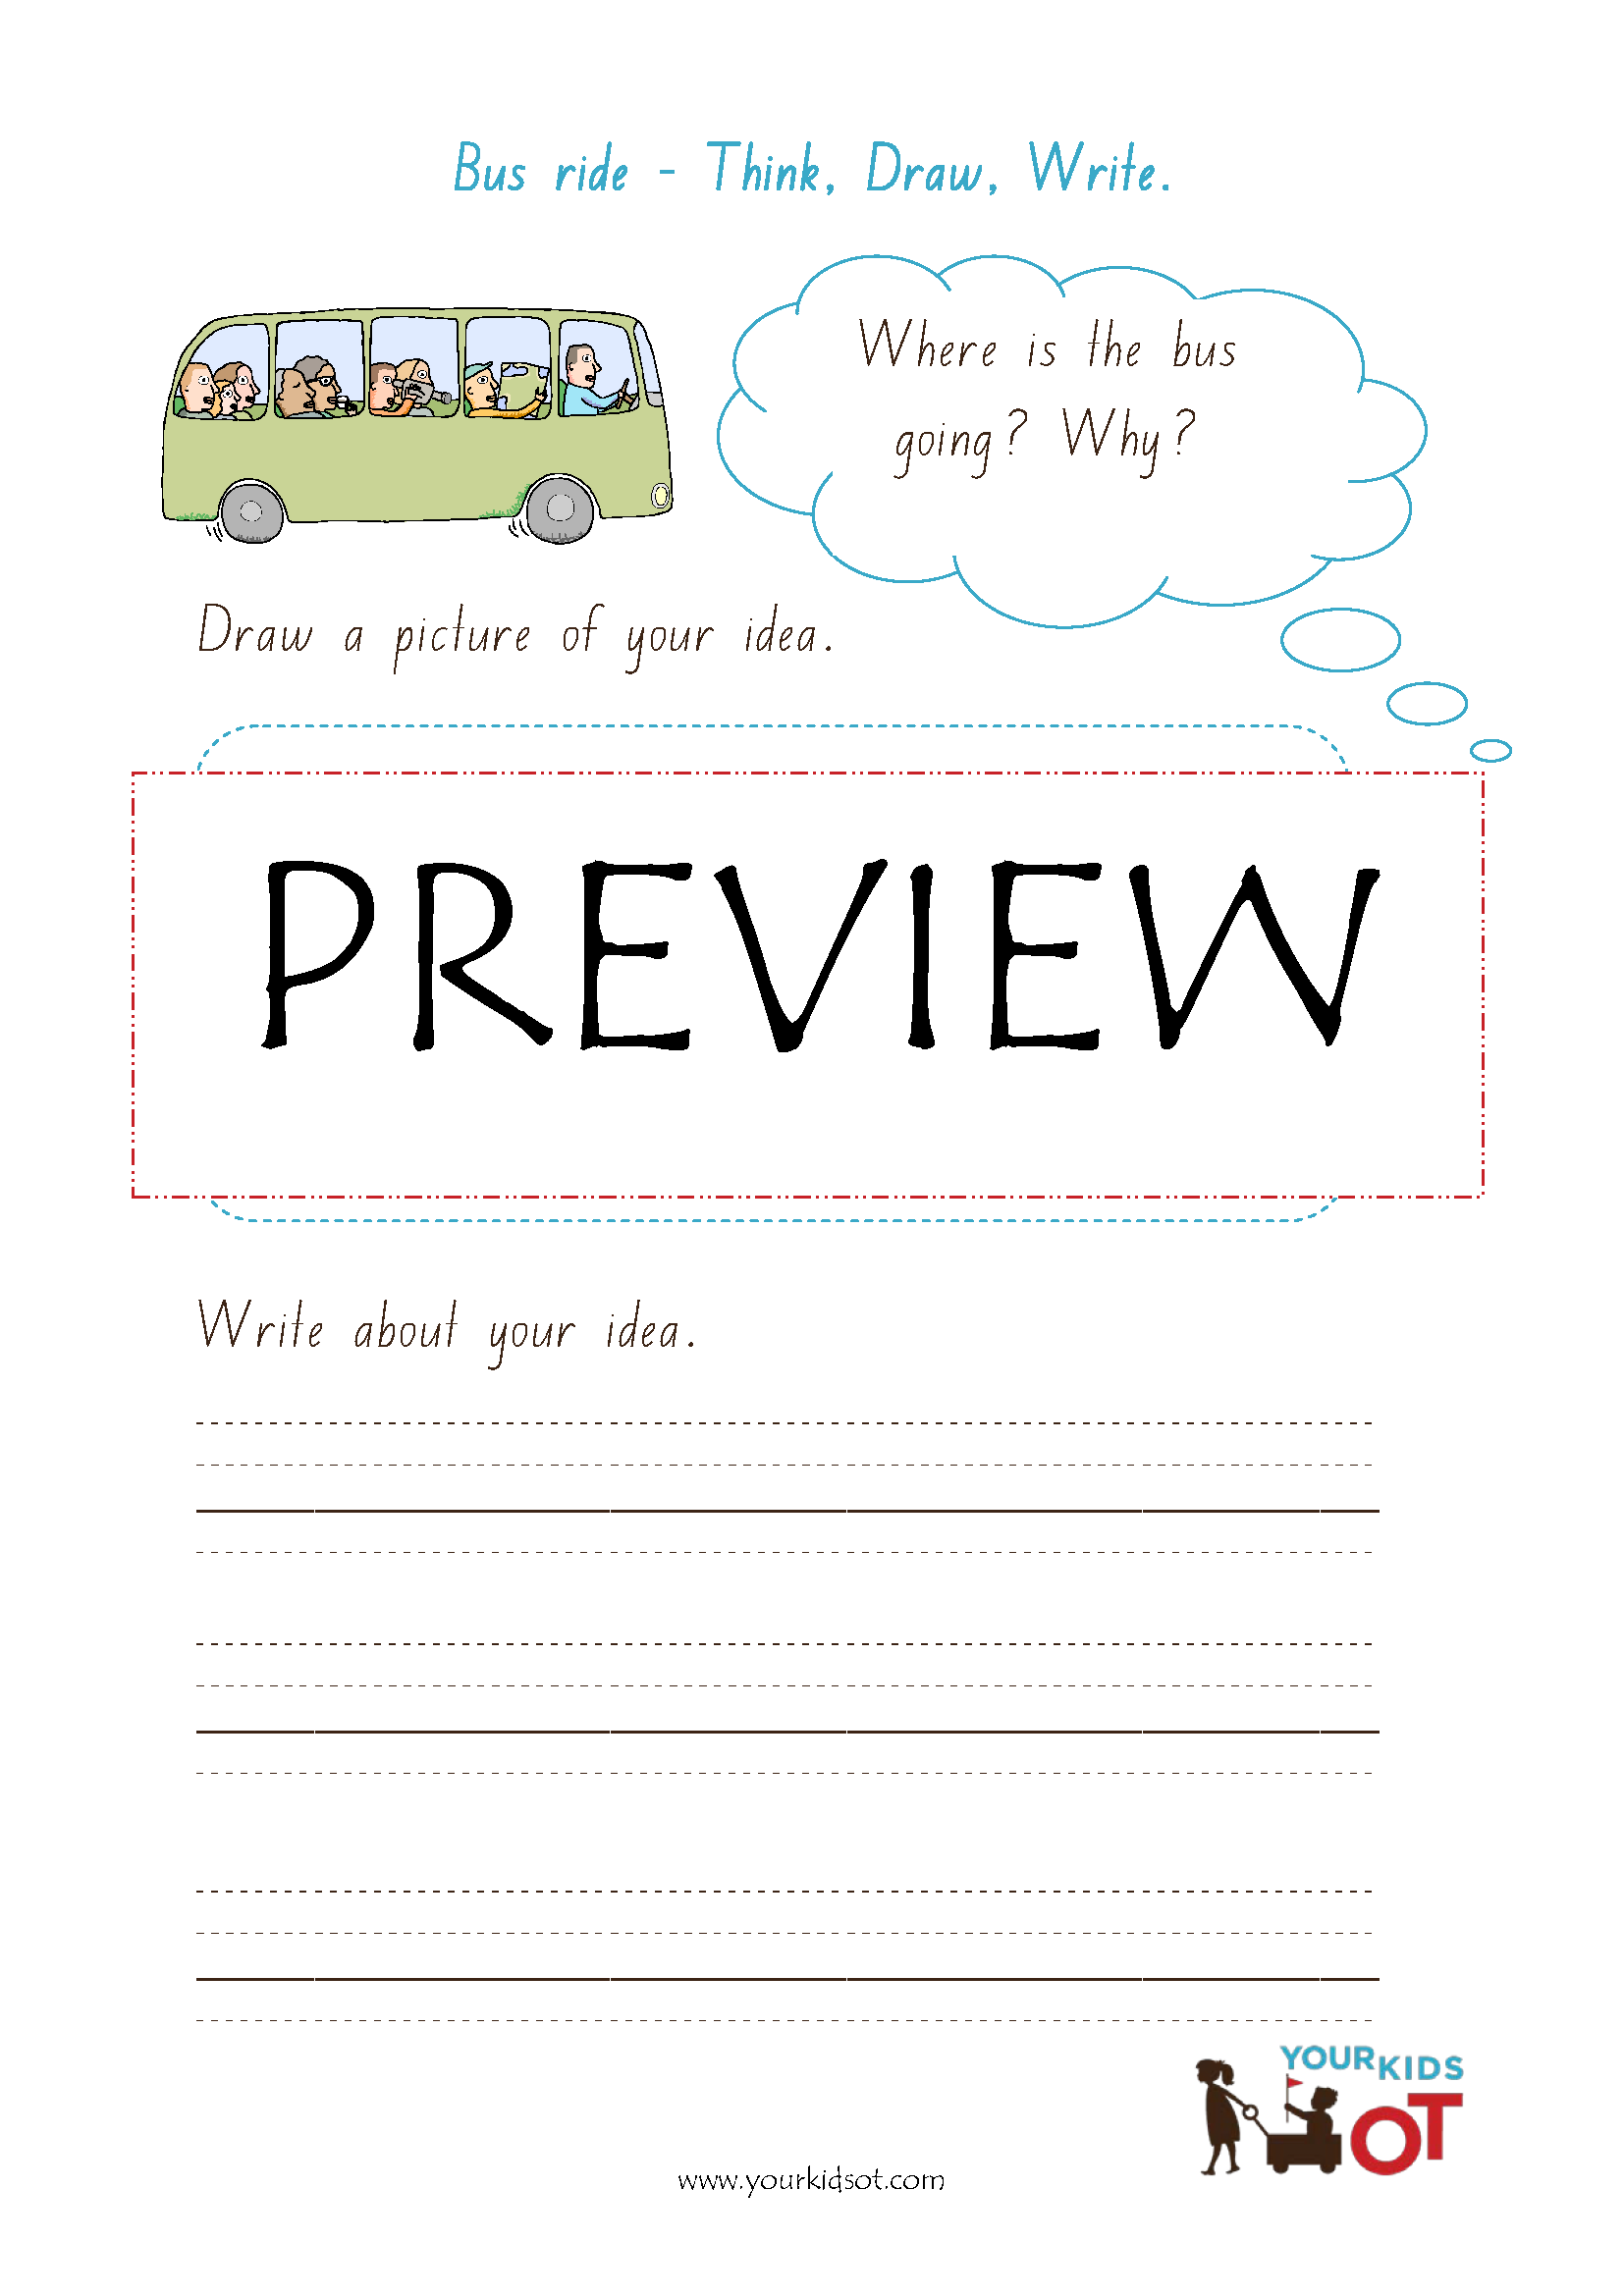 worksheet Writing Prompt Worksheets think draw write sentence writing prompt worksheet bundle